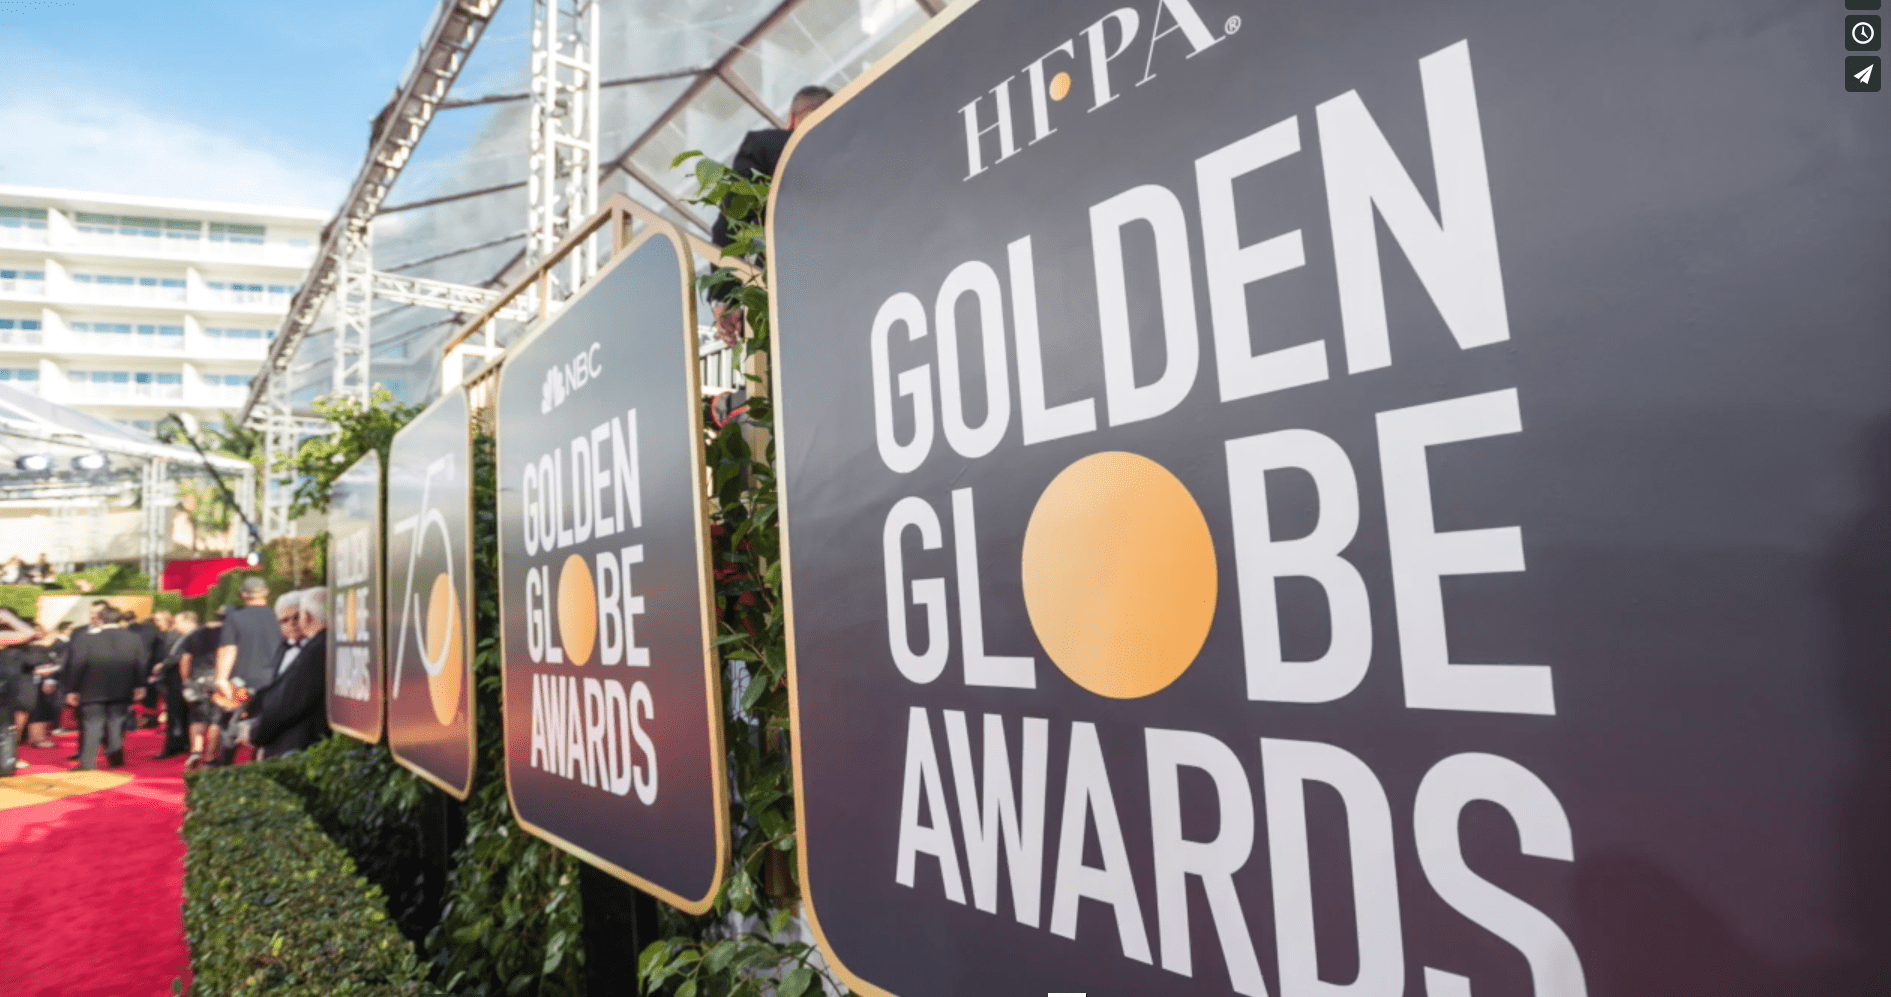 Golden Globe Awards Nominations 2021